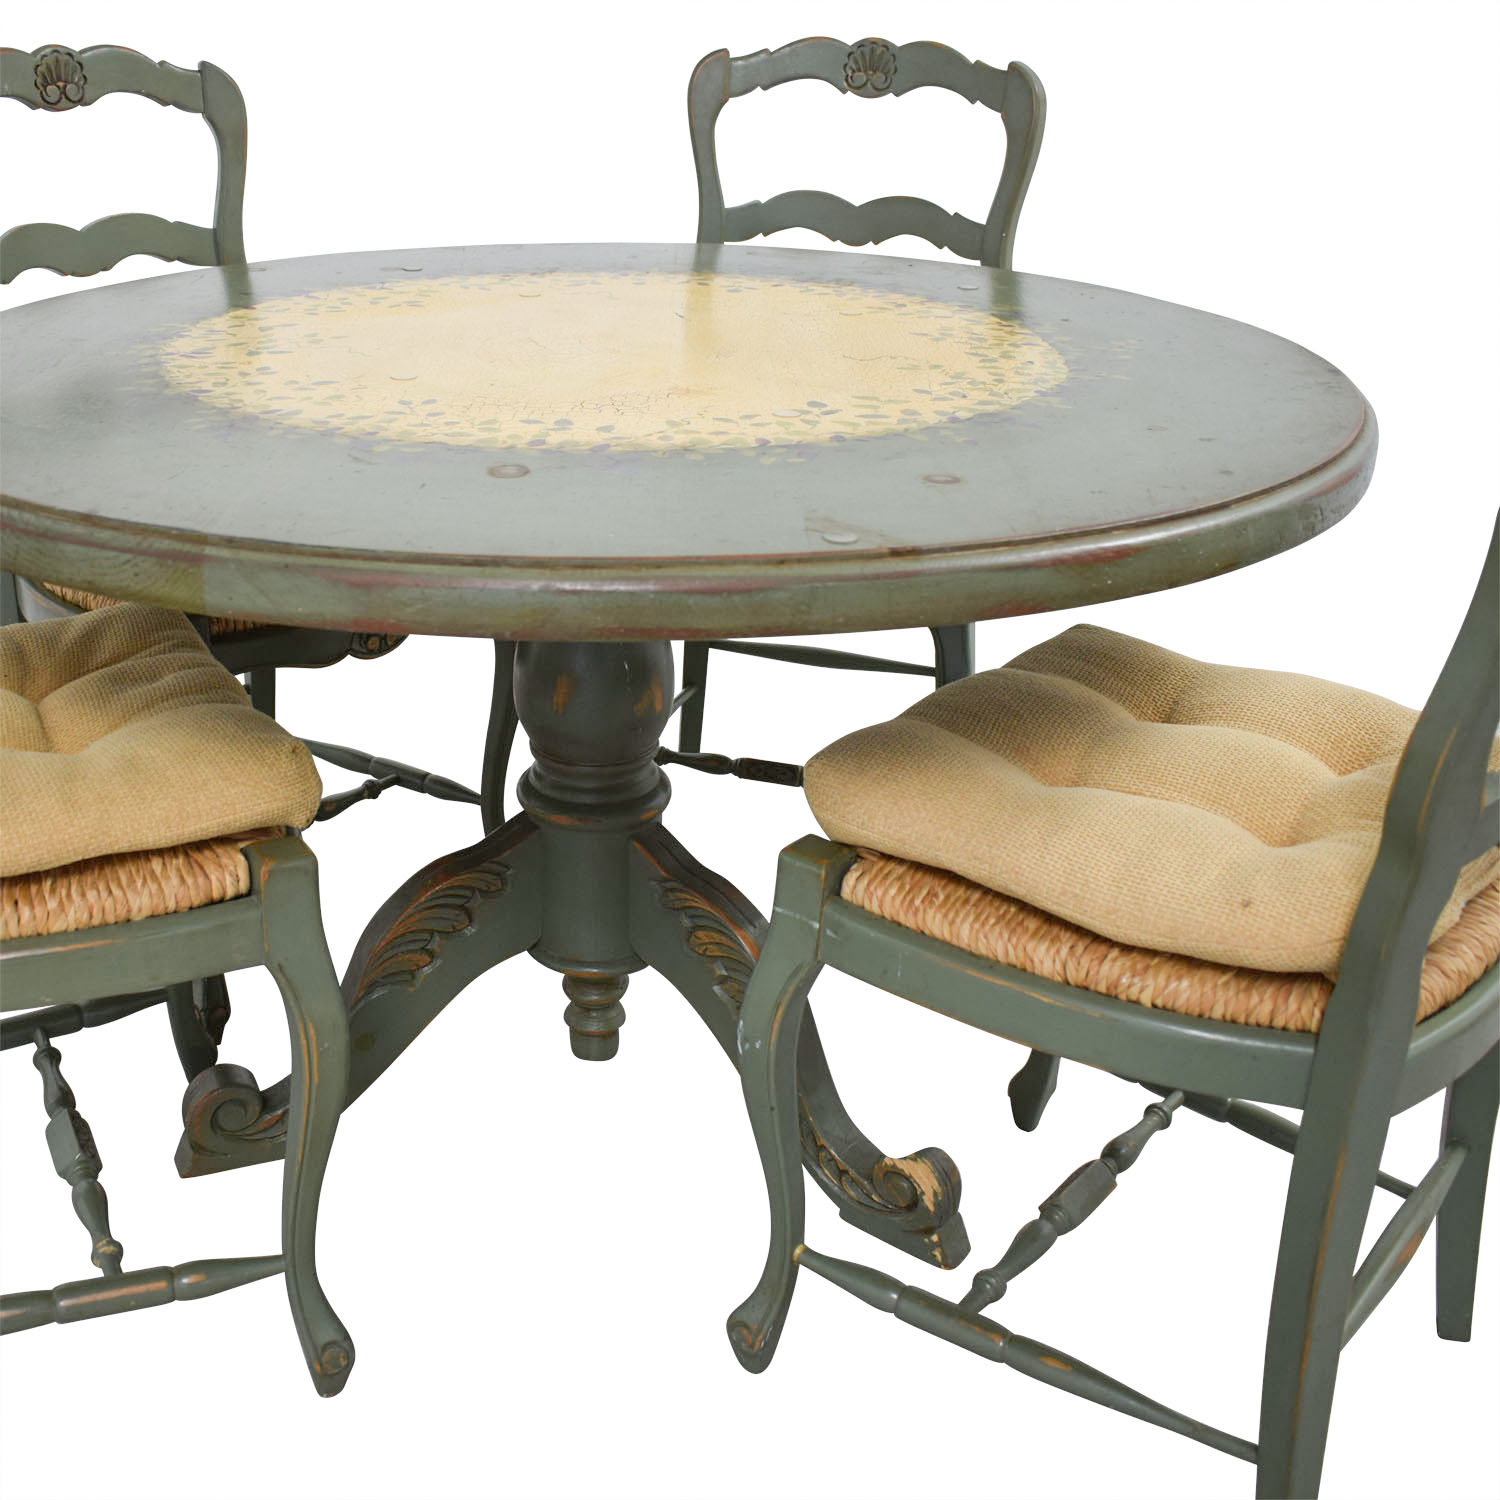 90% OFF - Hand Painted Country Style Kitchen Table and Chairs / Tables